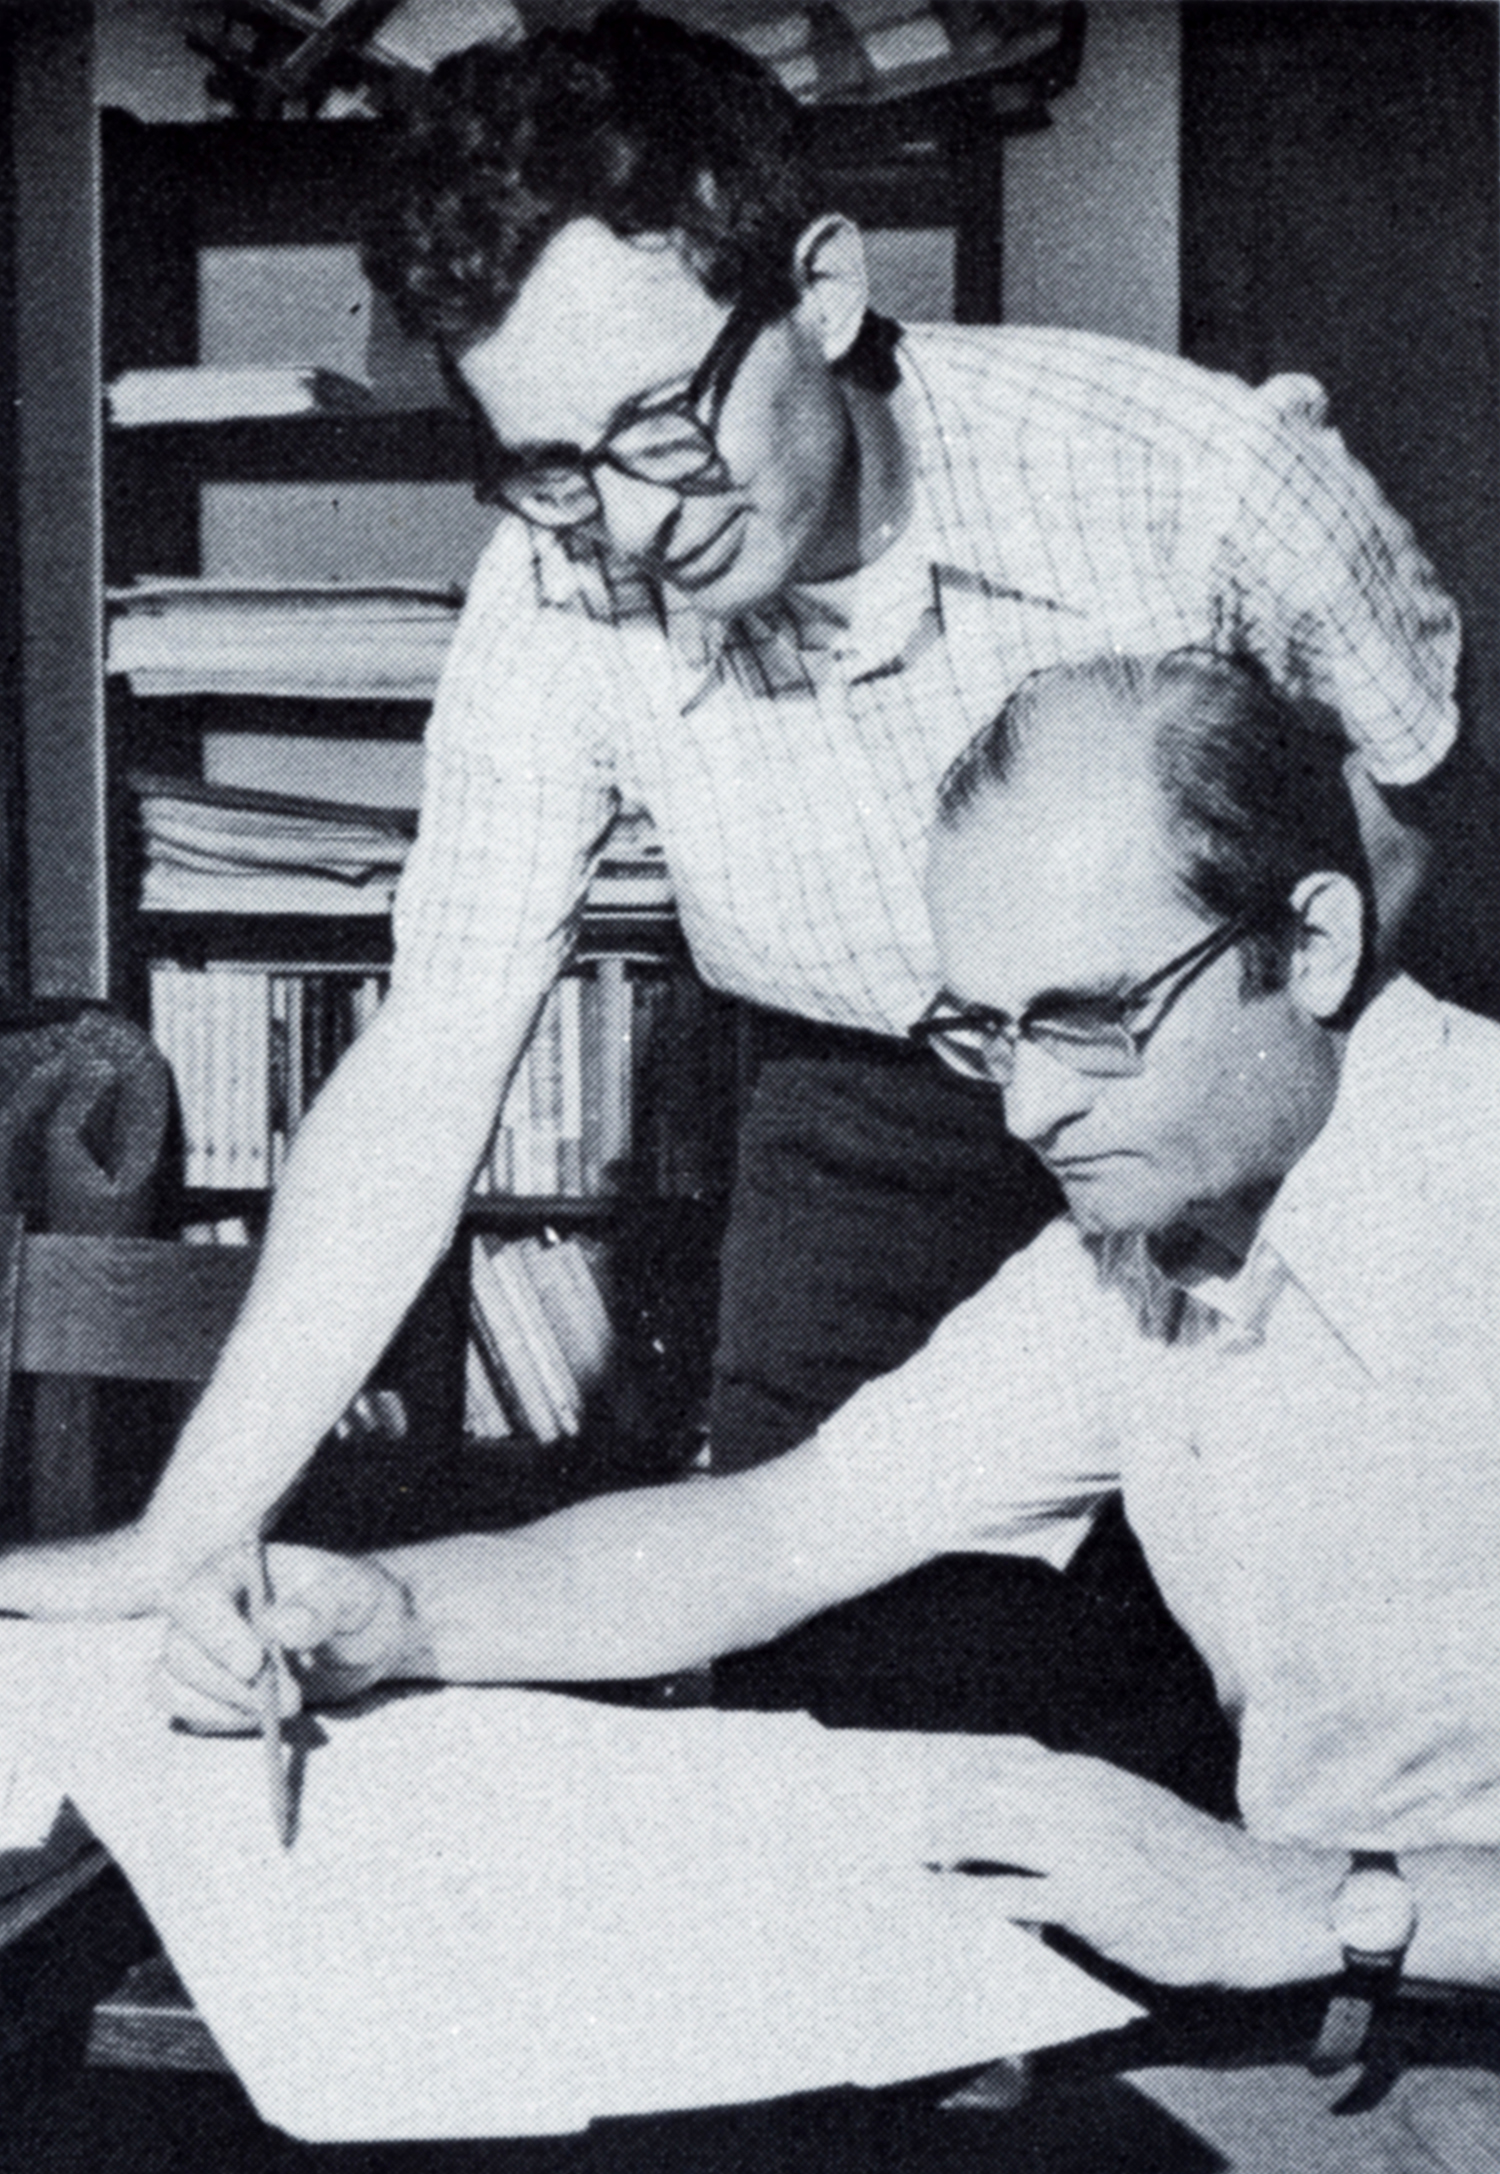 Kenneth Appel and Wolfgang Haken (seated) solve the Four Color Problem which was remarkable both for its mathematical and historical significance as the solution to a long-standing problem with an extremely simple formulation, and also for the method of proof which made extensive use of computing technology--making it the first mathematical proof to rely in an essential fashion on the use of computers.